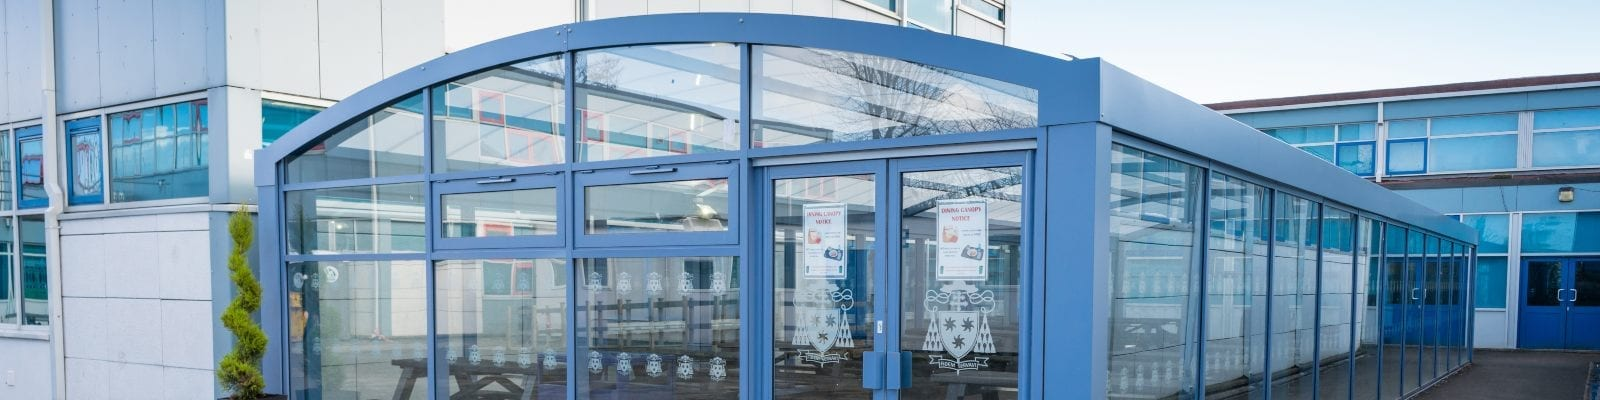 Enclosed shelter we designed for St Wilfrid's High School